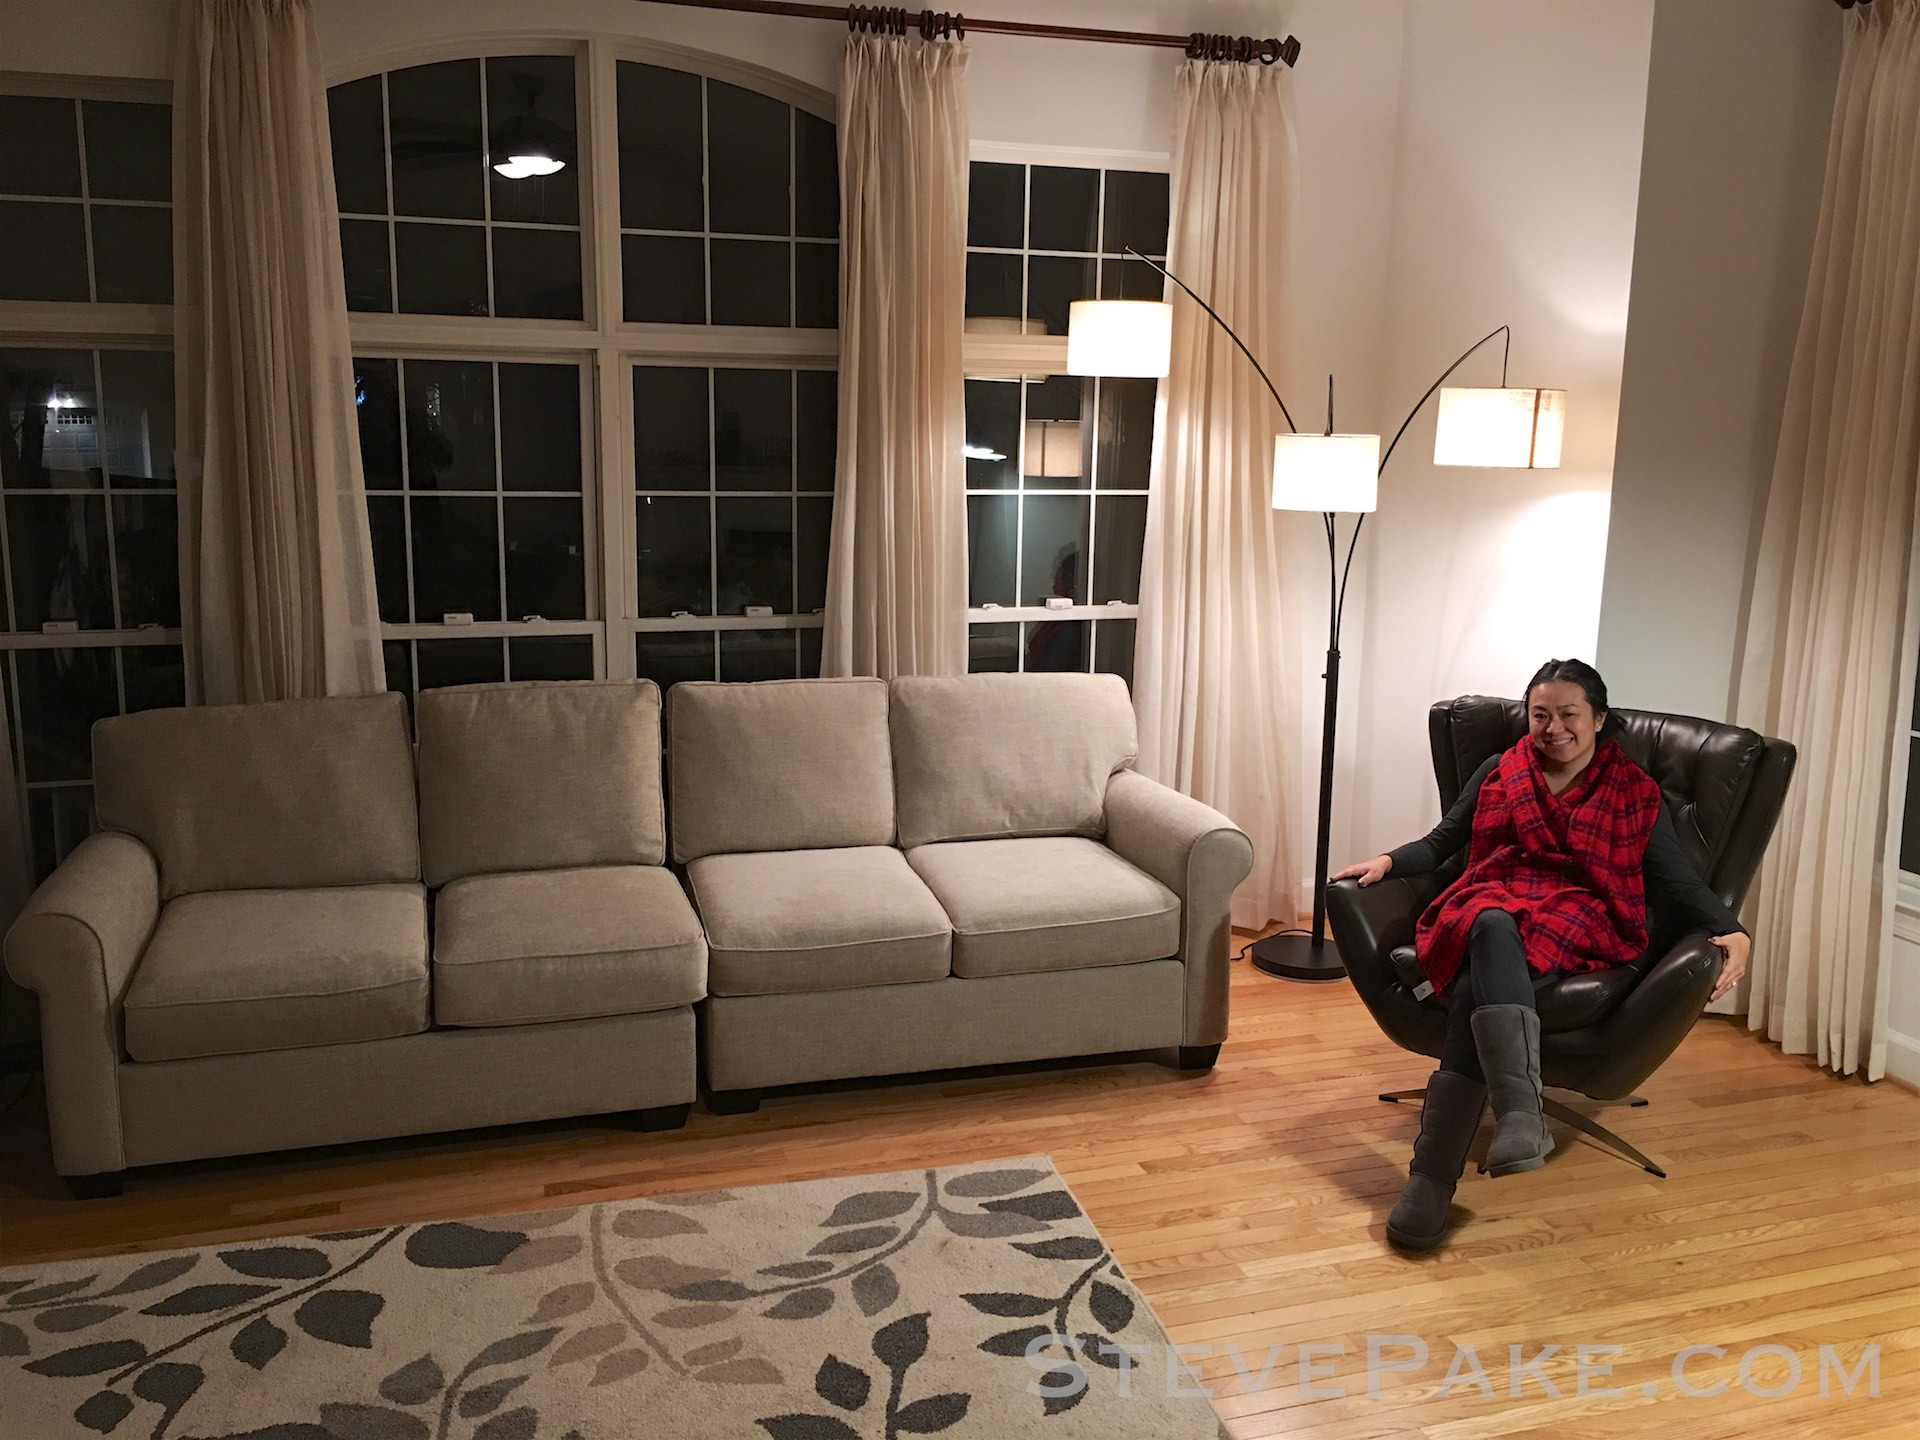 """Our new couch and leather chair, """"free"""" delivery courtesy of the Suburban. We managed to find another matching leather chair and an ottoman a few days after this, and also picked up a new bed frame. What delivery fee? :)"""